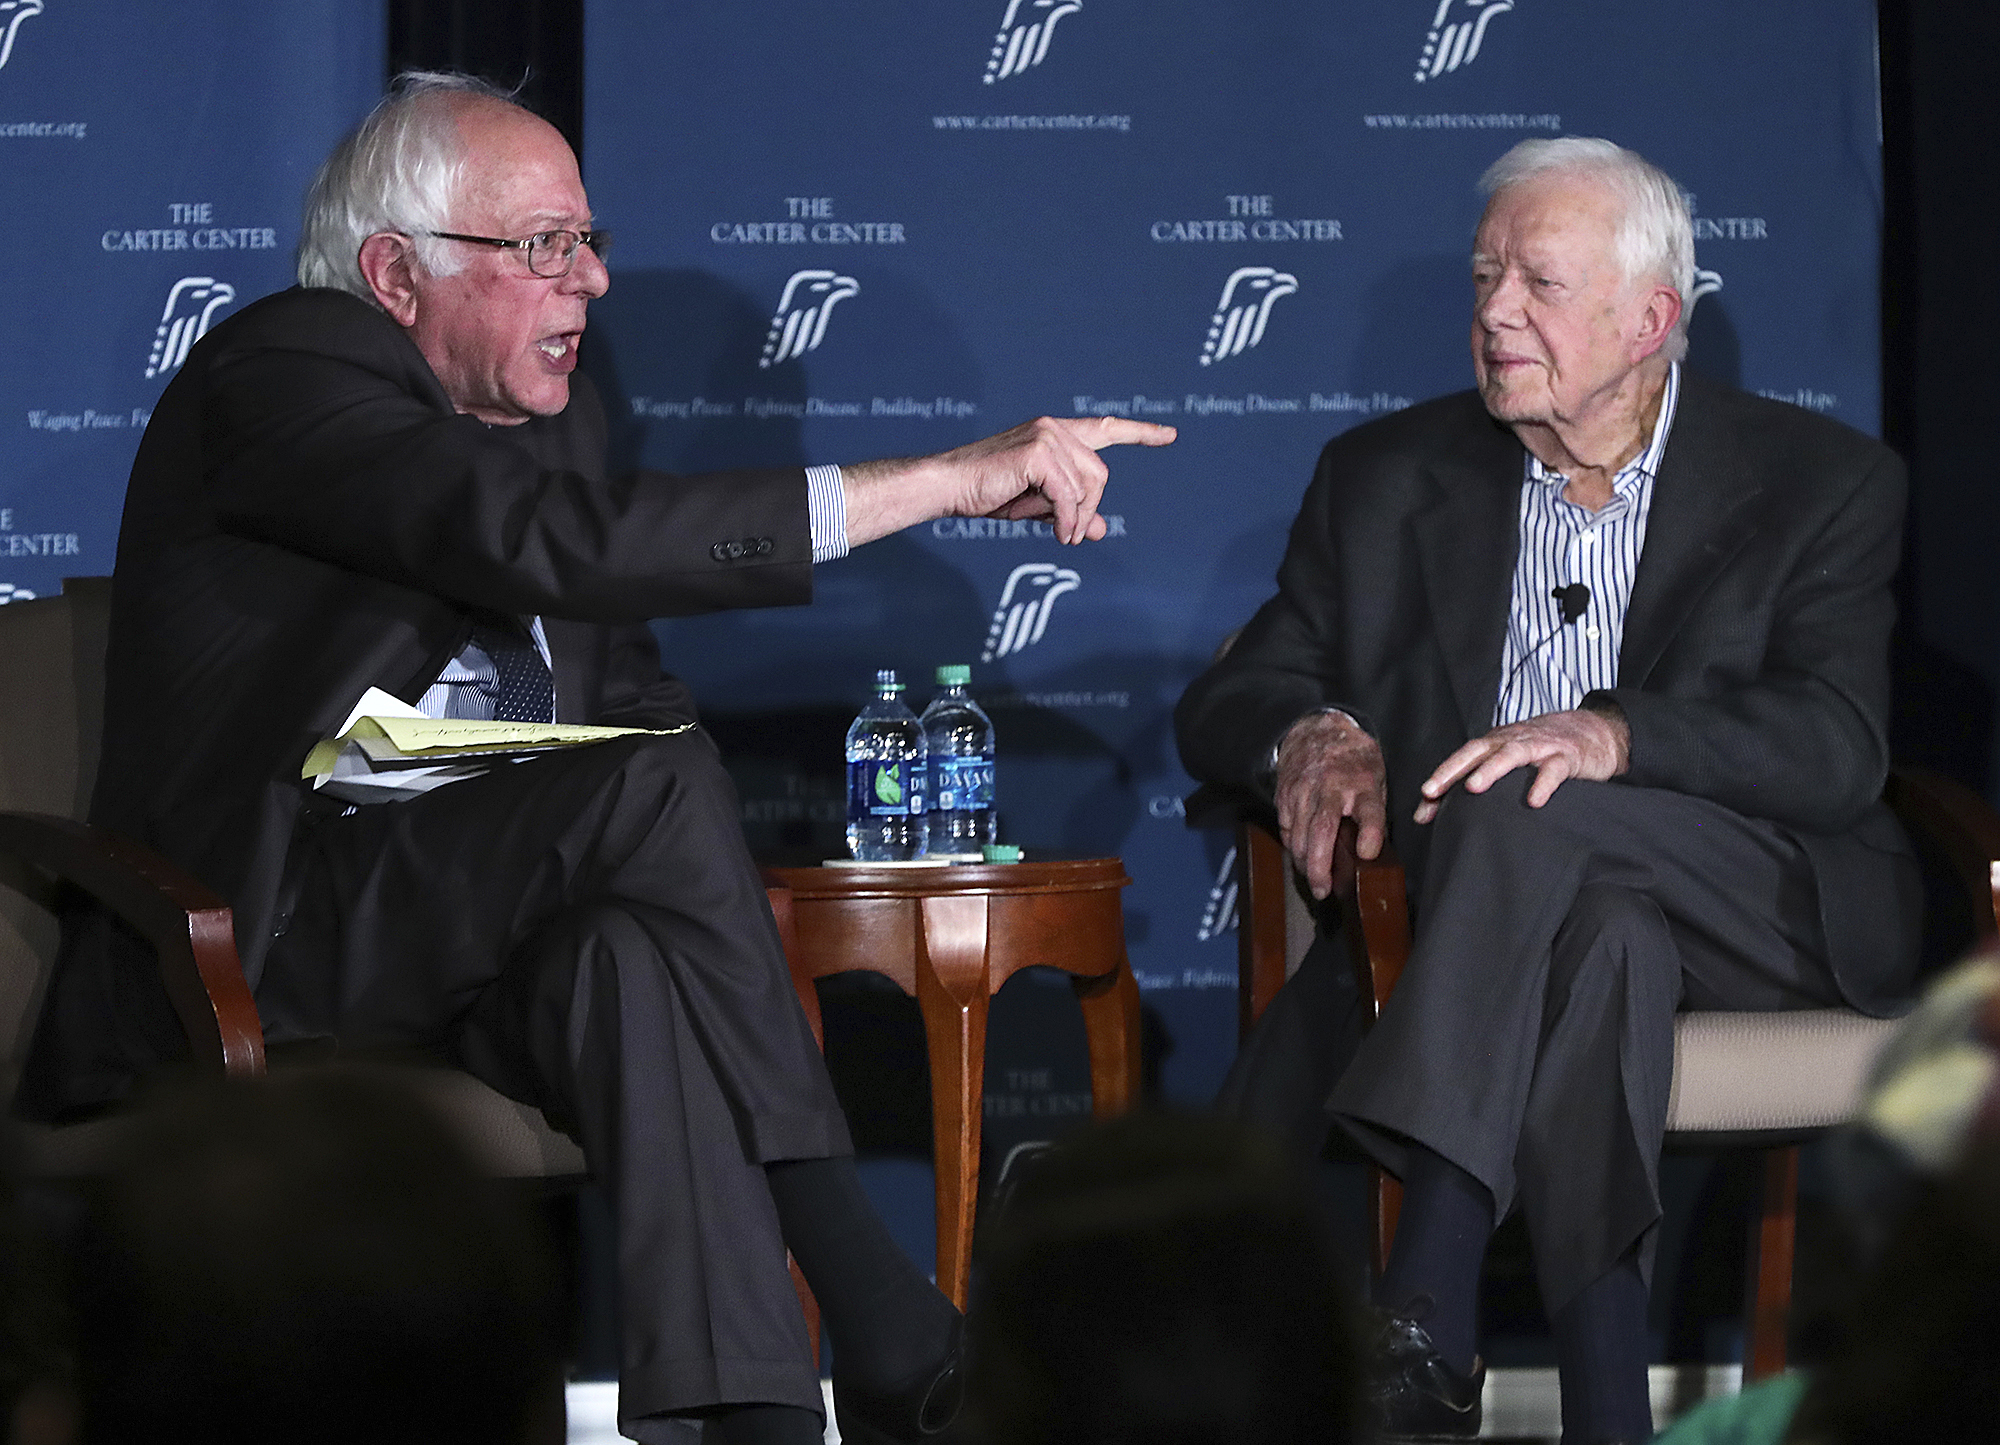 Sen. Bernie Sanders and Former President Jimmy Carter discuss human rights during the Human Rights Defenders Forum in Atlanta, Ga., on May 8, 2017.